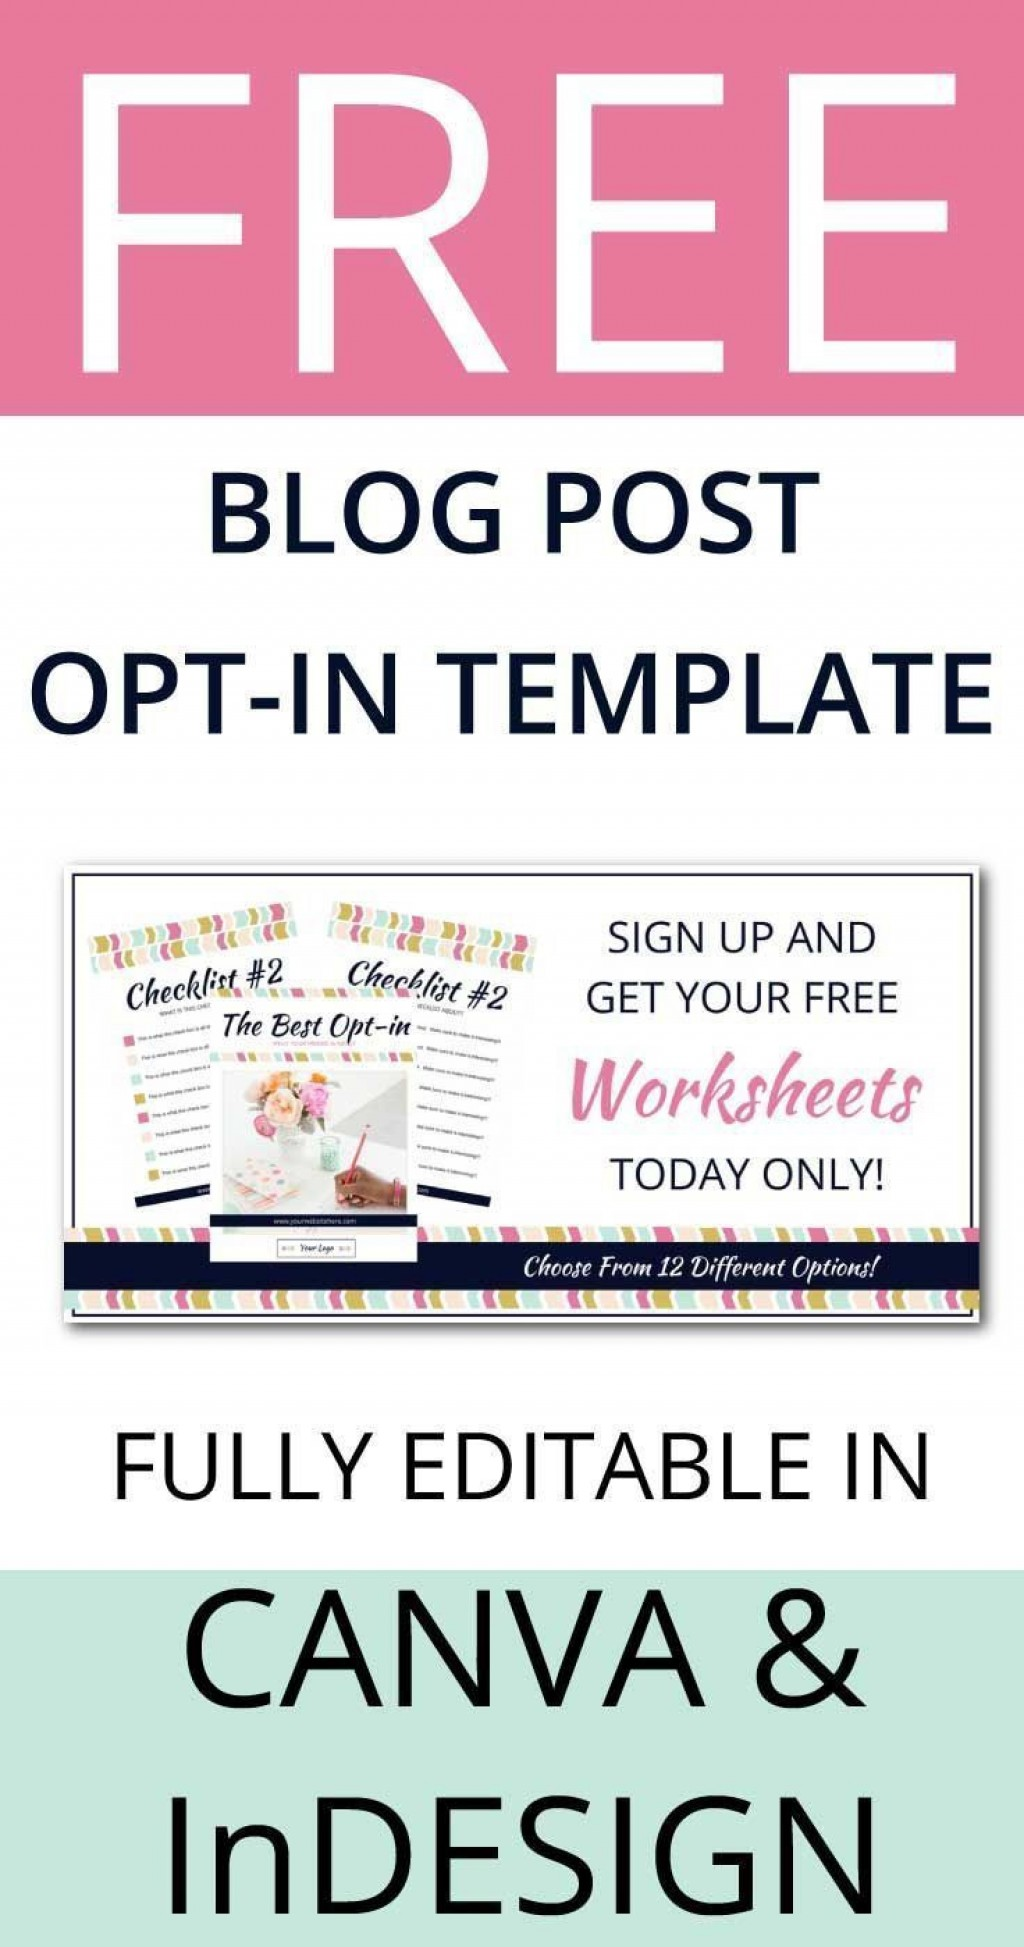 005 Sensational Join Our Mailing List Template High Resolution  EmailLarge